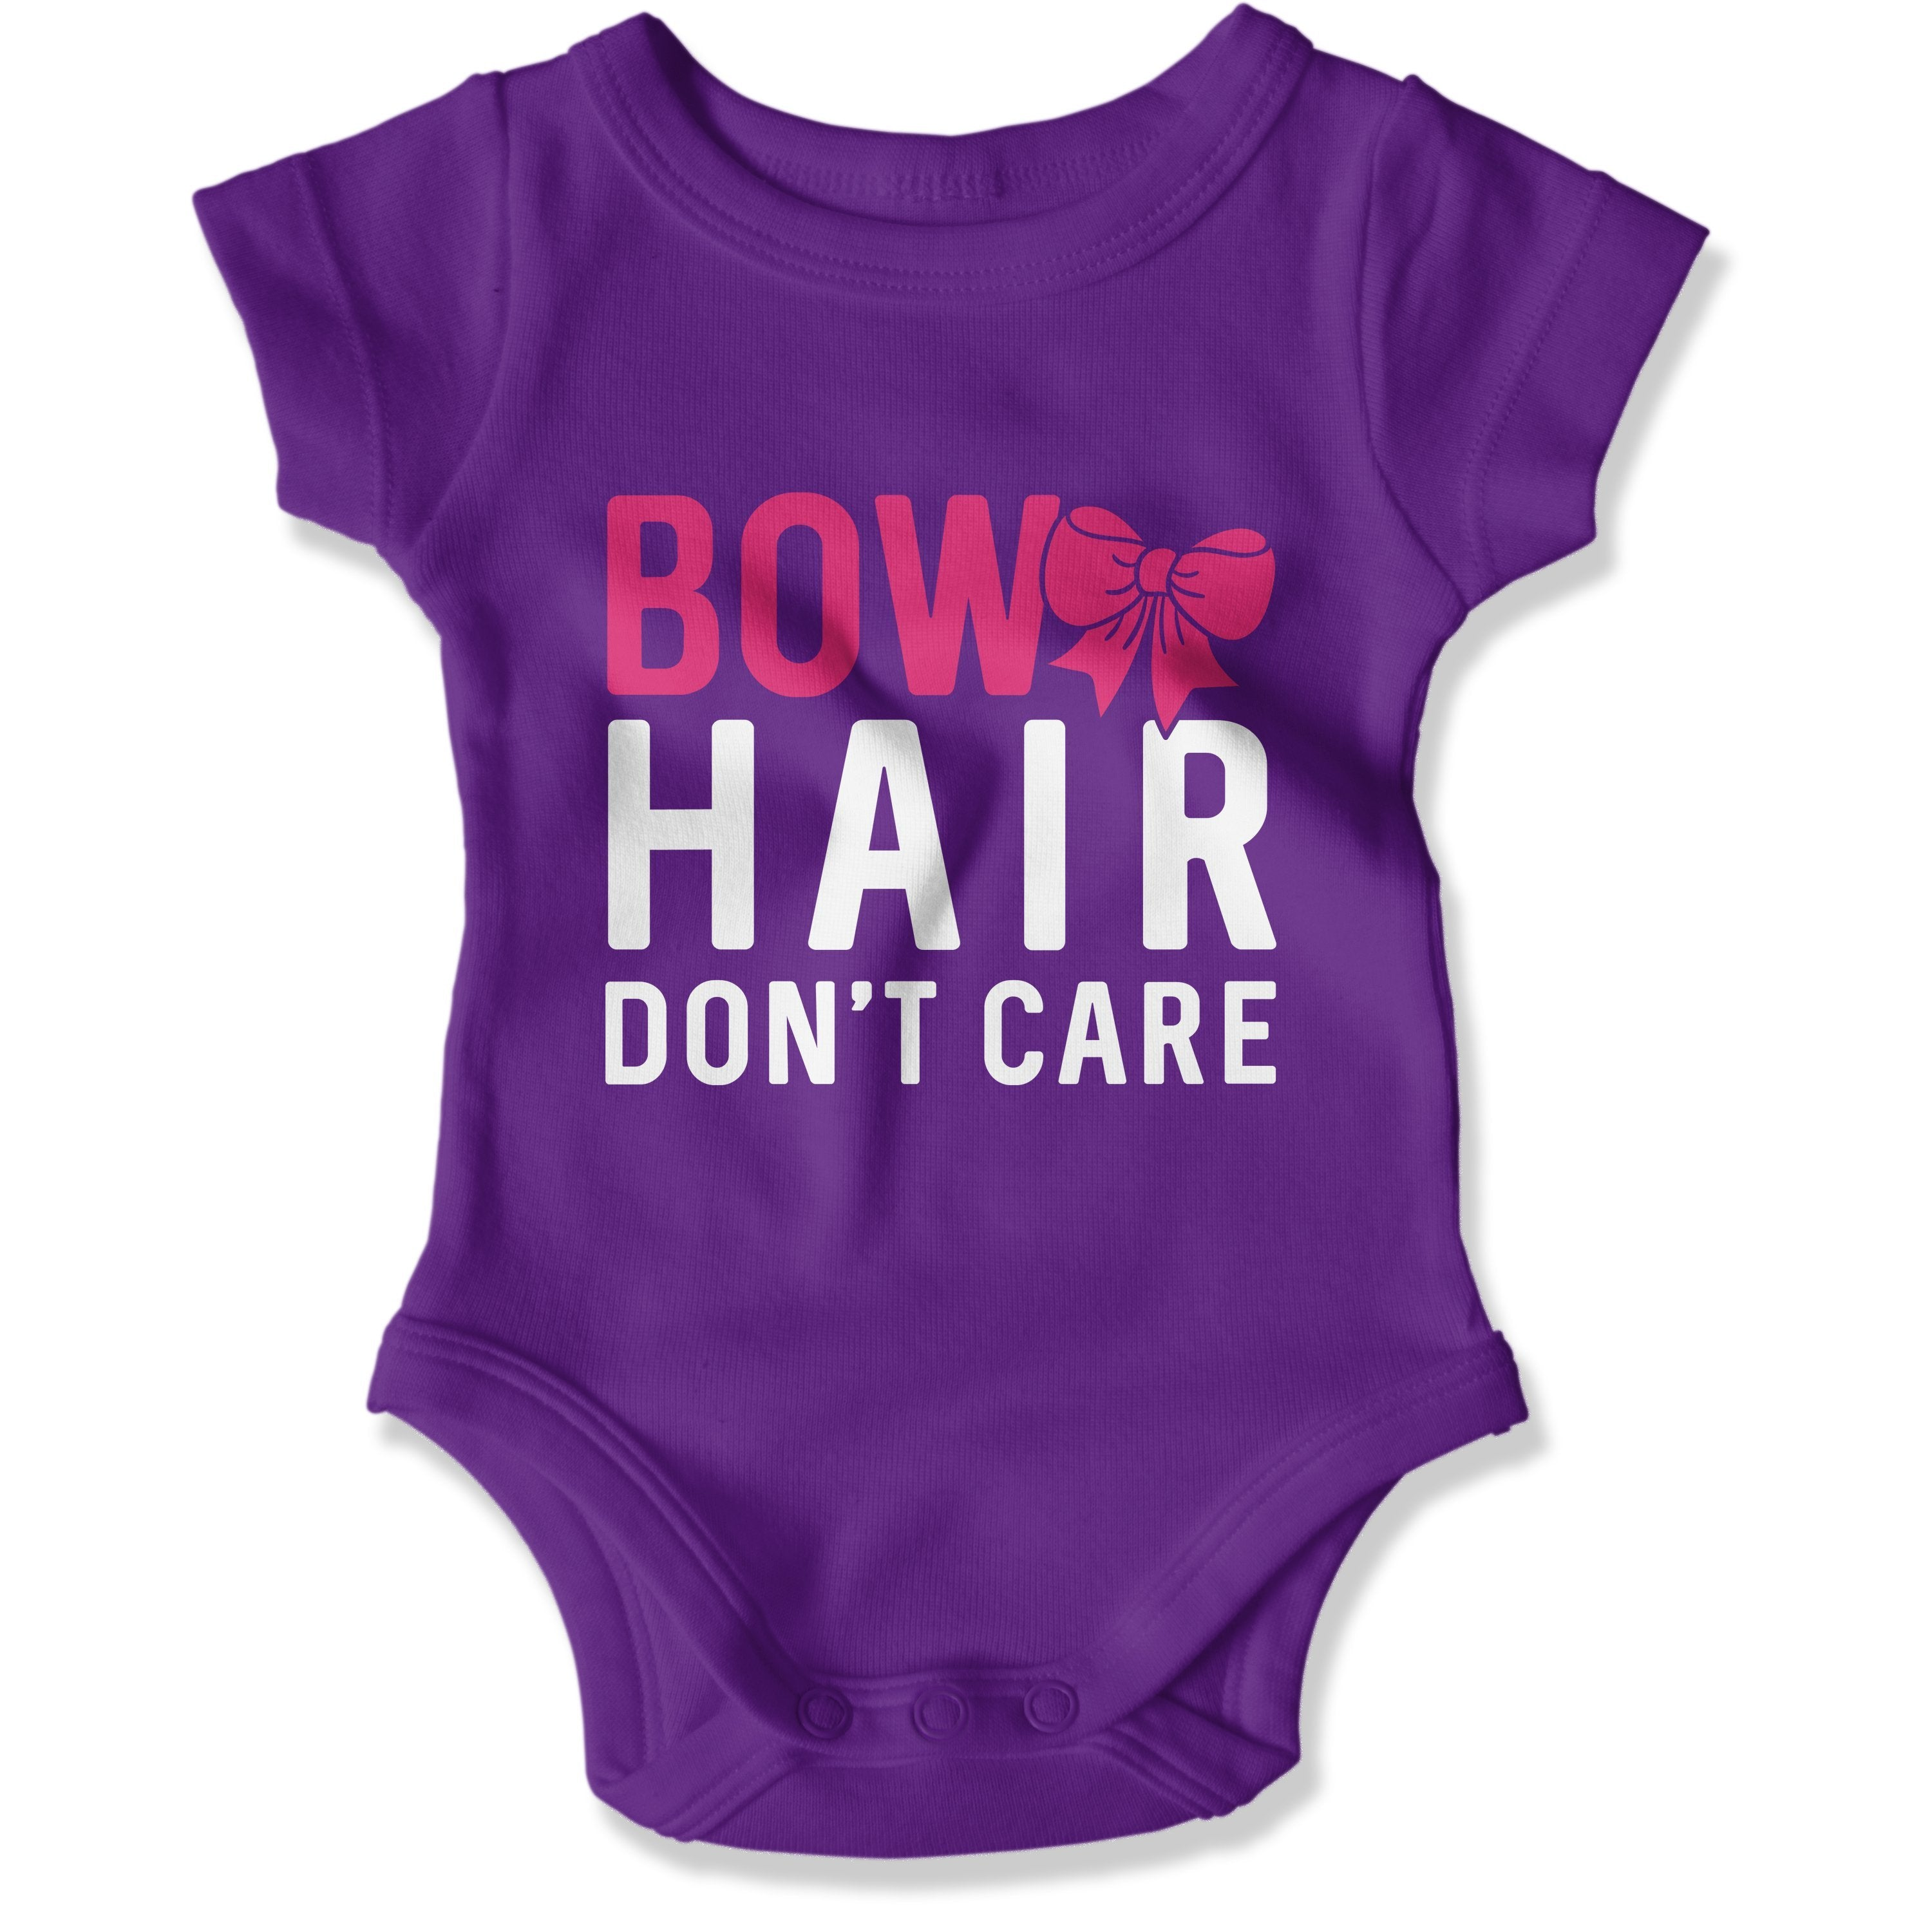 Bow Hair Don't Care - Baby Bodysuit